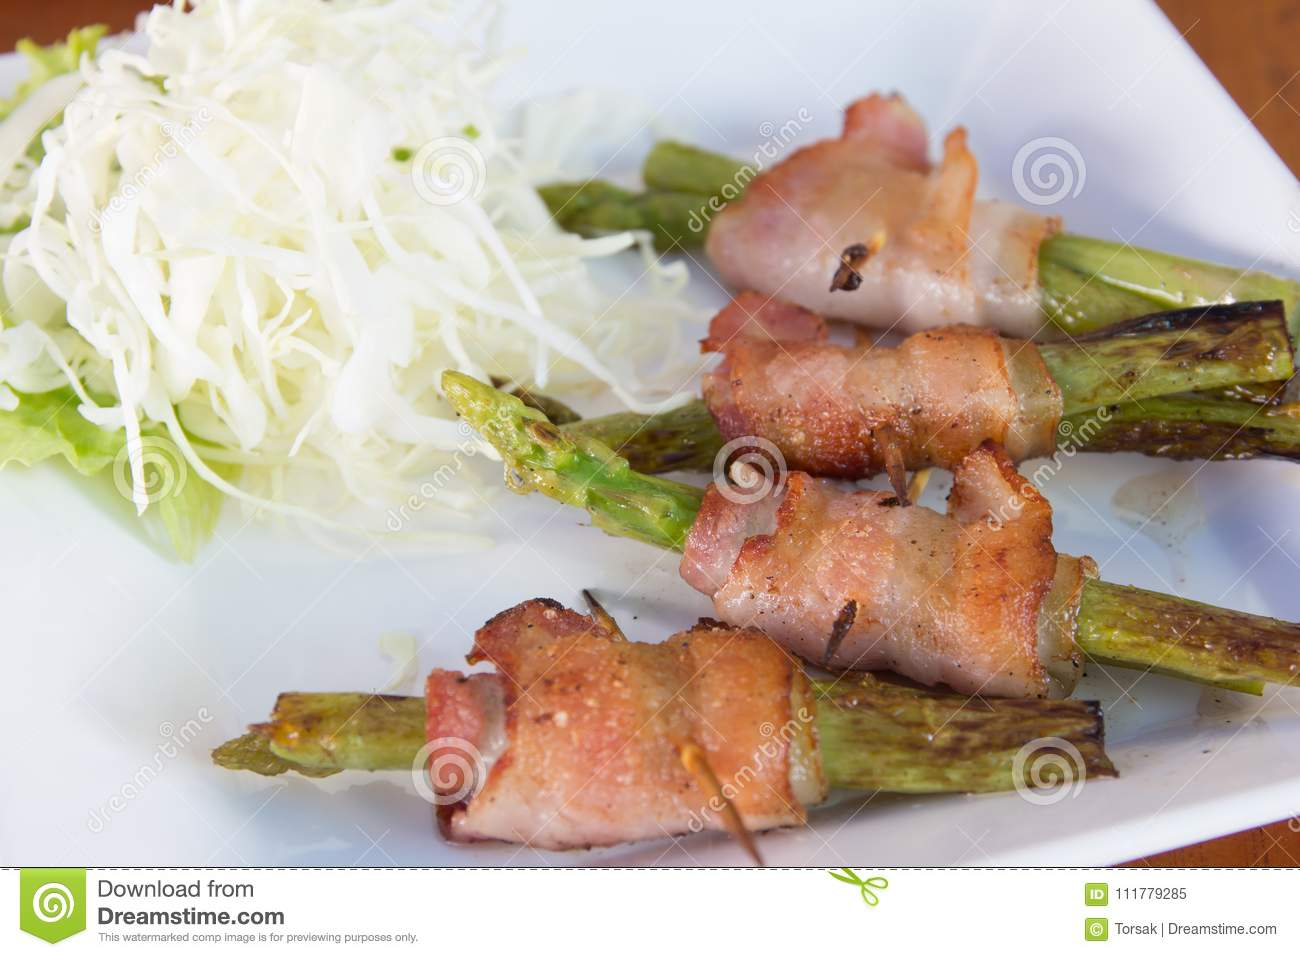 Grilled asparagus wrapped with bacon